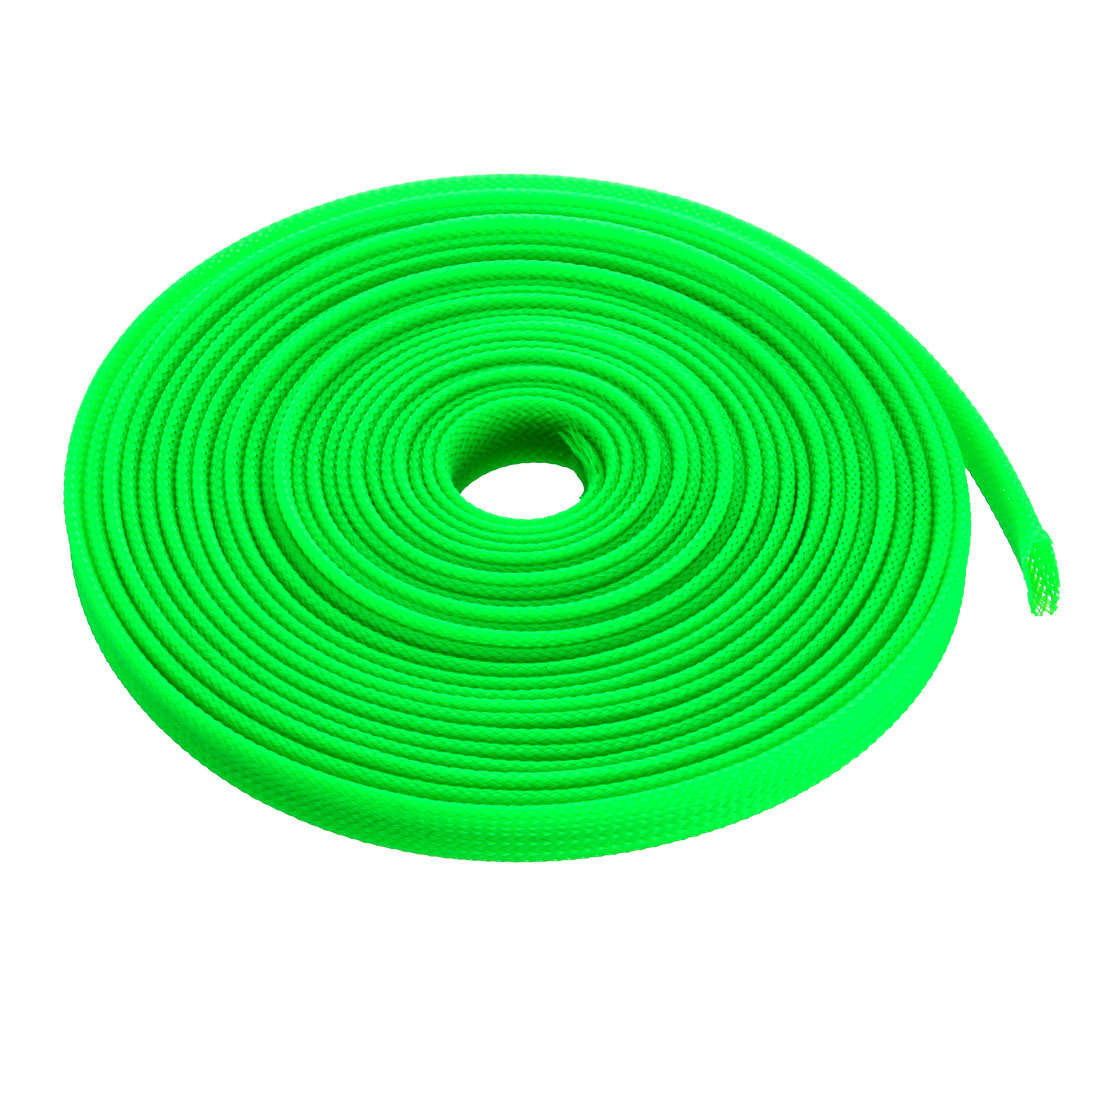 PET Braided Sleeving 16.4 Feet 5m Expandable Cable Wrap 12mm Diameter Wire Sheath Fluorescent Green